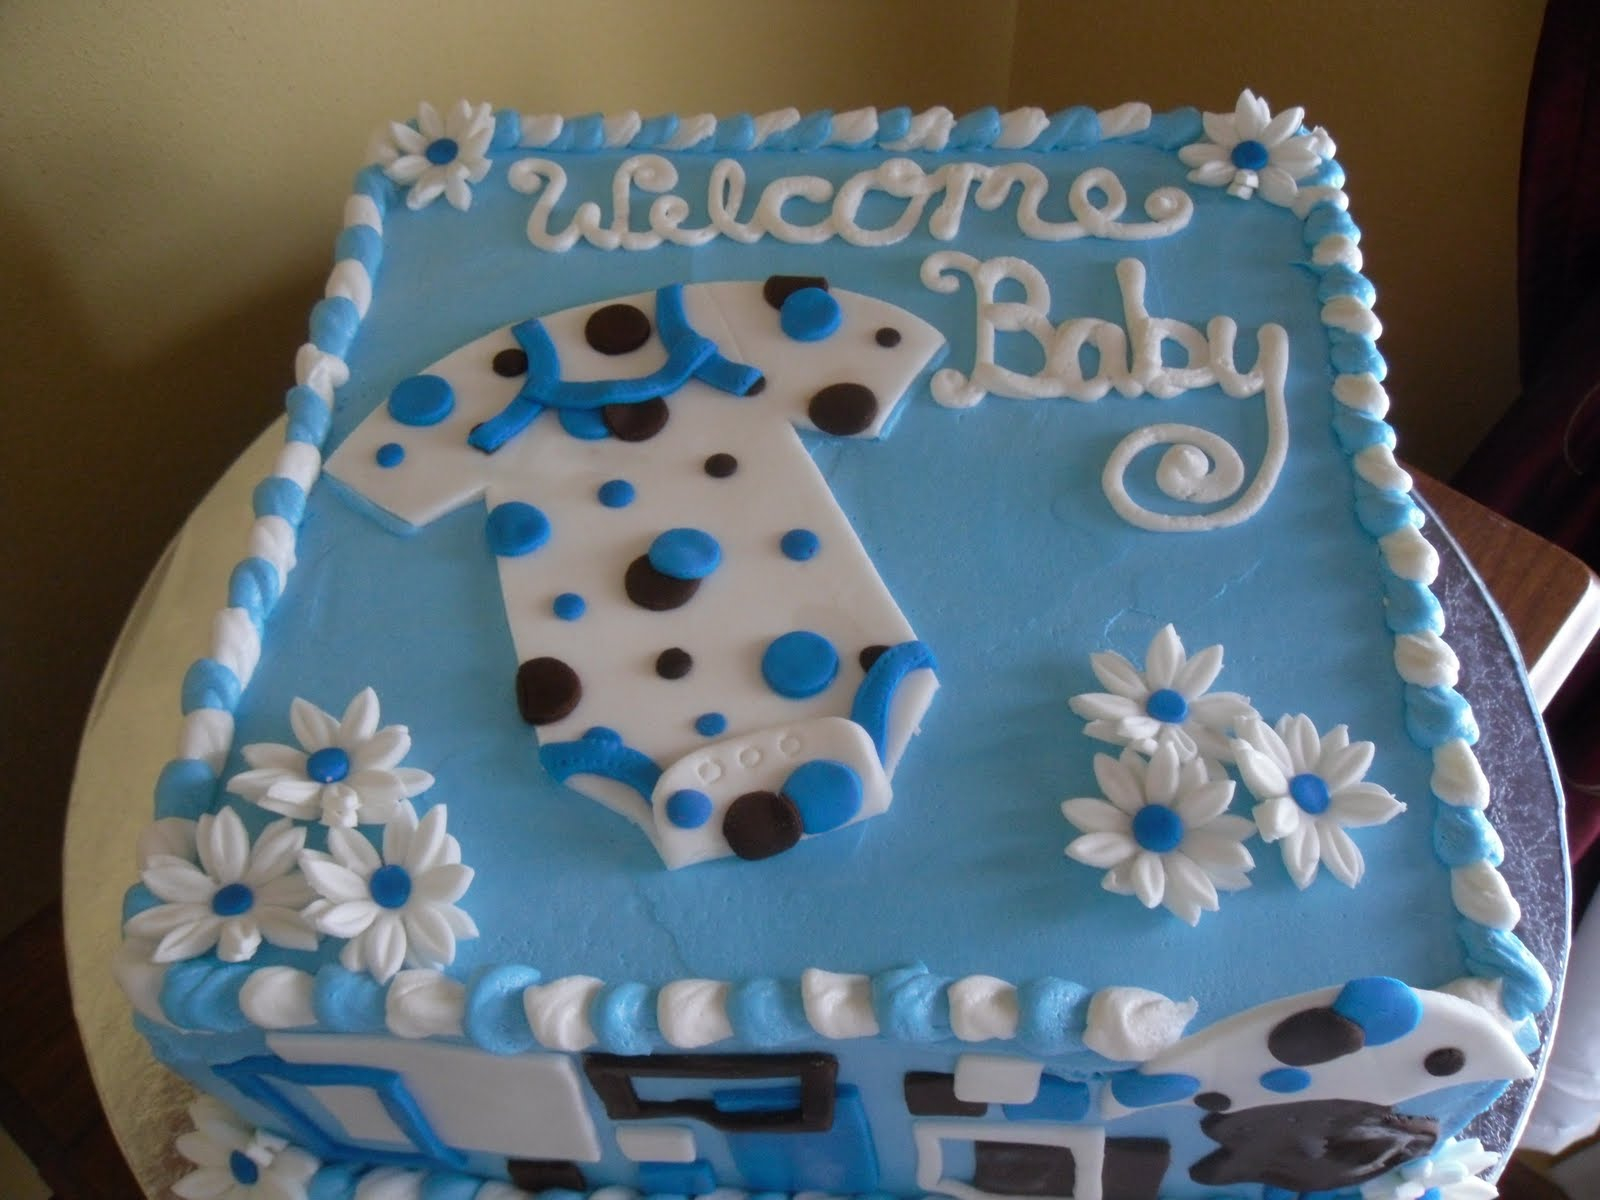 Cool Baby Shower Cakes: Homemade Baby Shower Cake Ideas For A Boy inside Baby Boy Shower Cakes